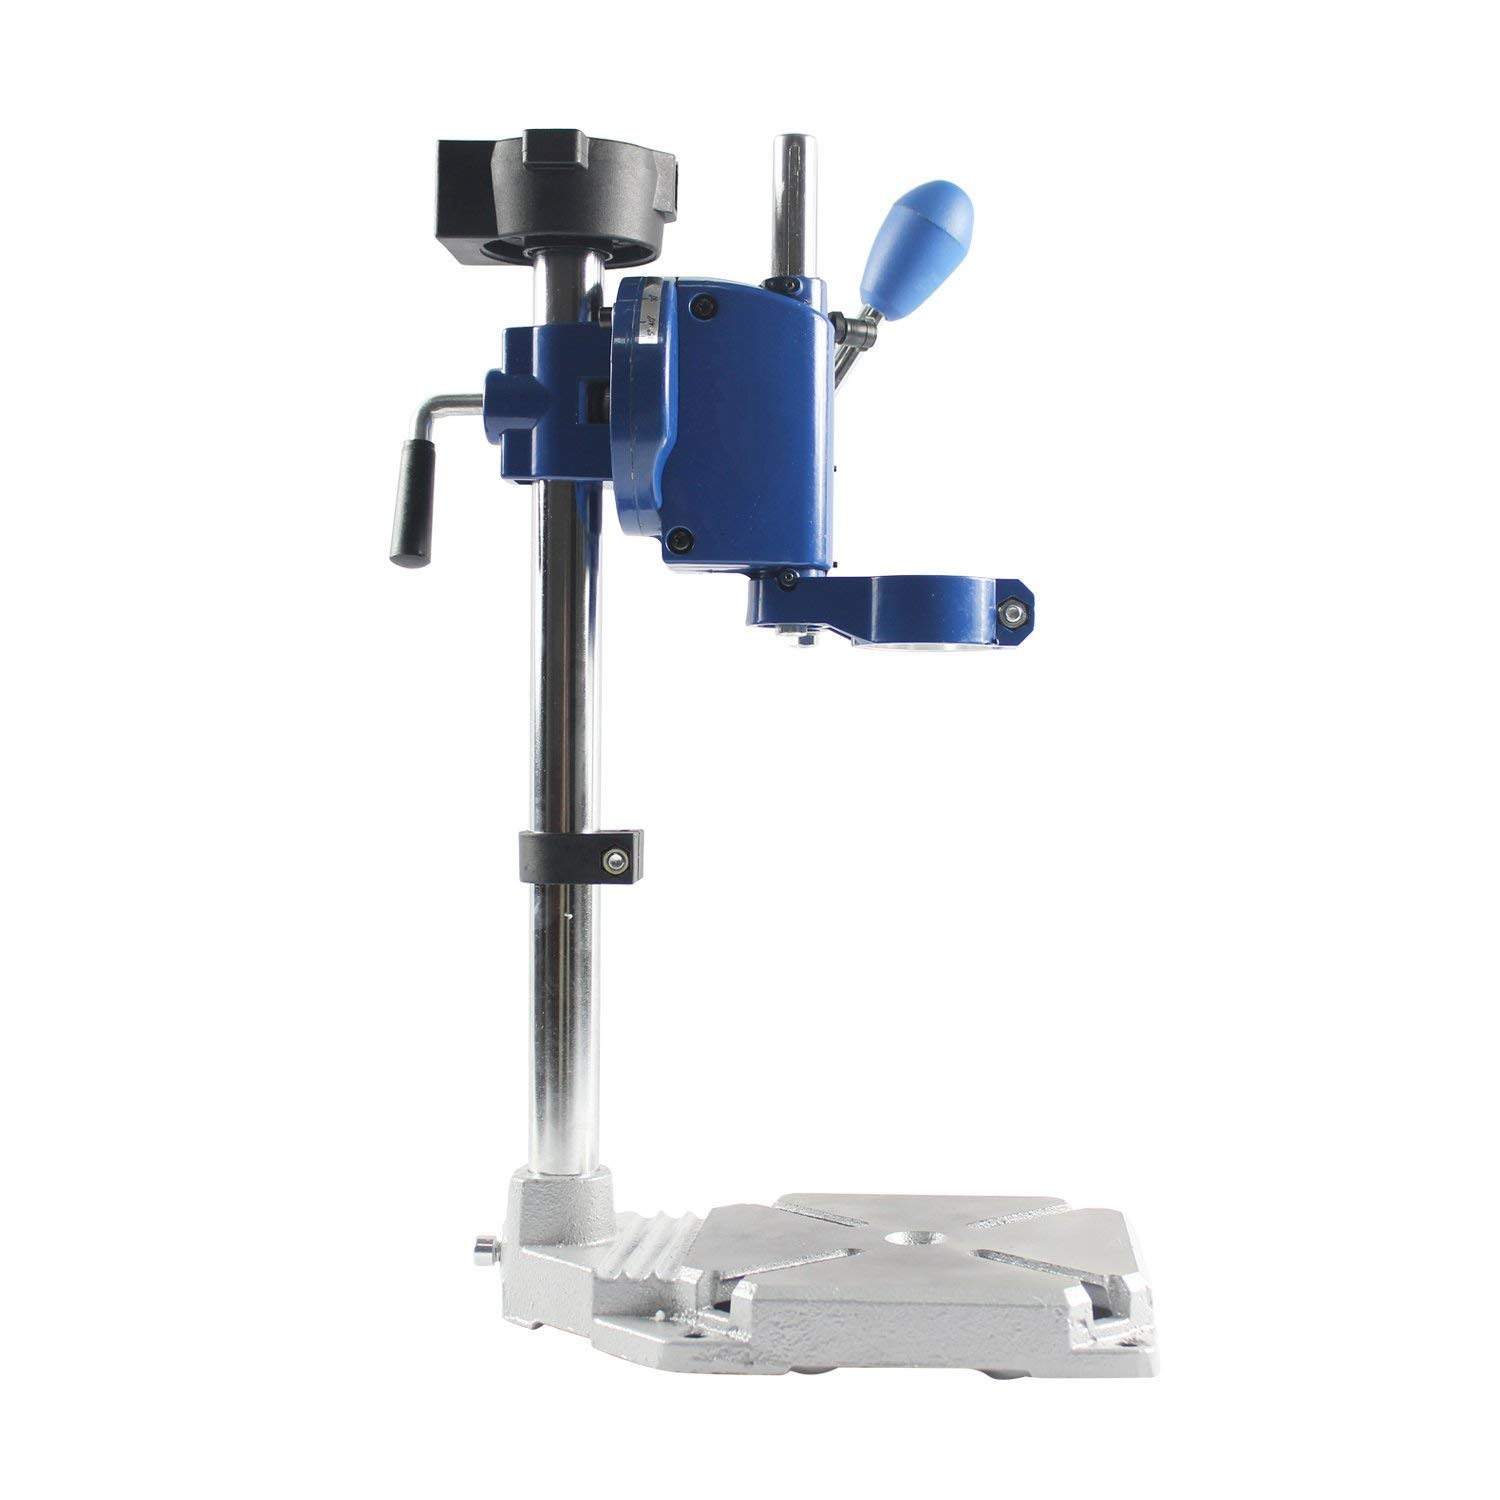 HUBEST New Design Drill Press Drill Holder for Hand Drill Engraving Machine Electrical drill stand Drilling Collet Table 25-43mm, 0-90 degrees